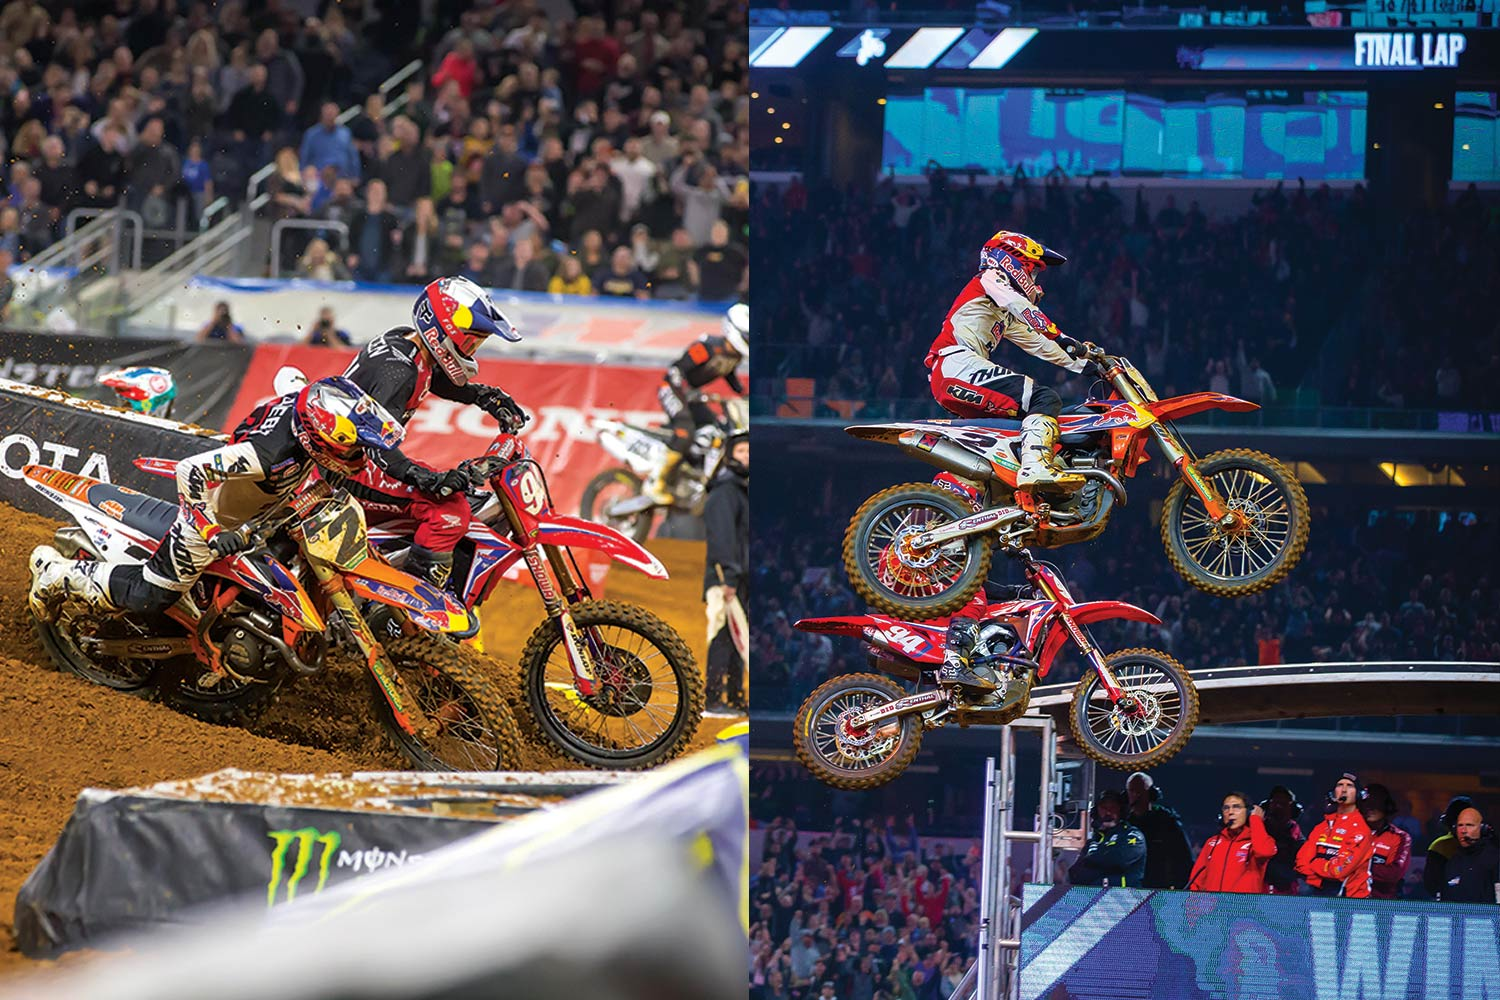 In the 2019 Monster Energy AMA Supercross Championship, Red Bull KTM's Cooper Webb flashed by Honda HRC factory rider Ken Roczen for a photo finish in Arlington, Texas.